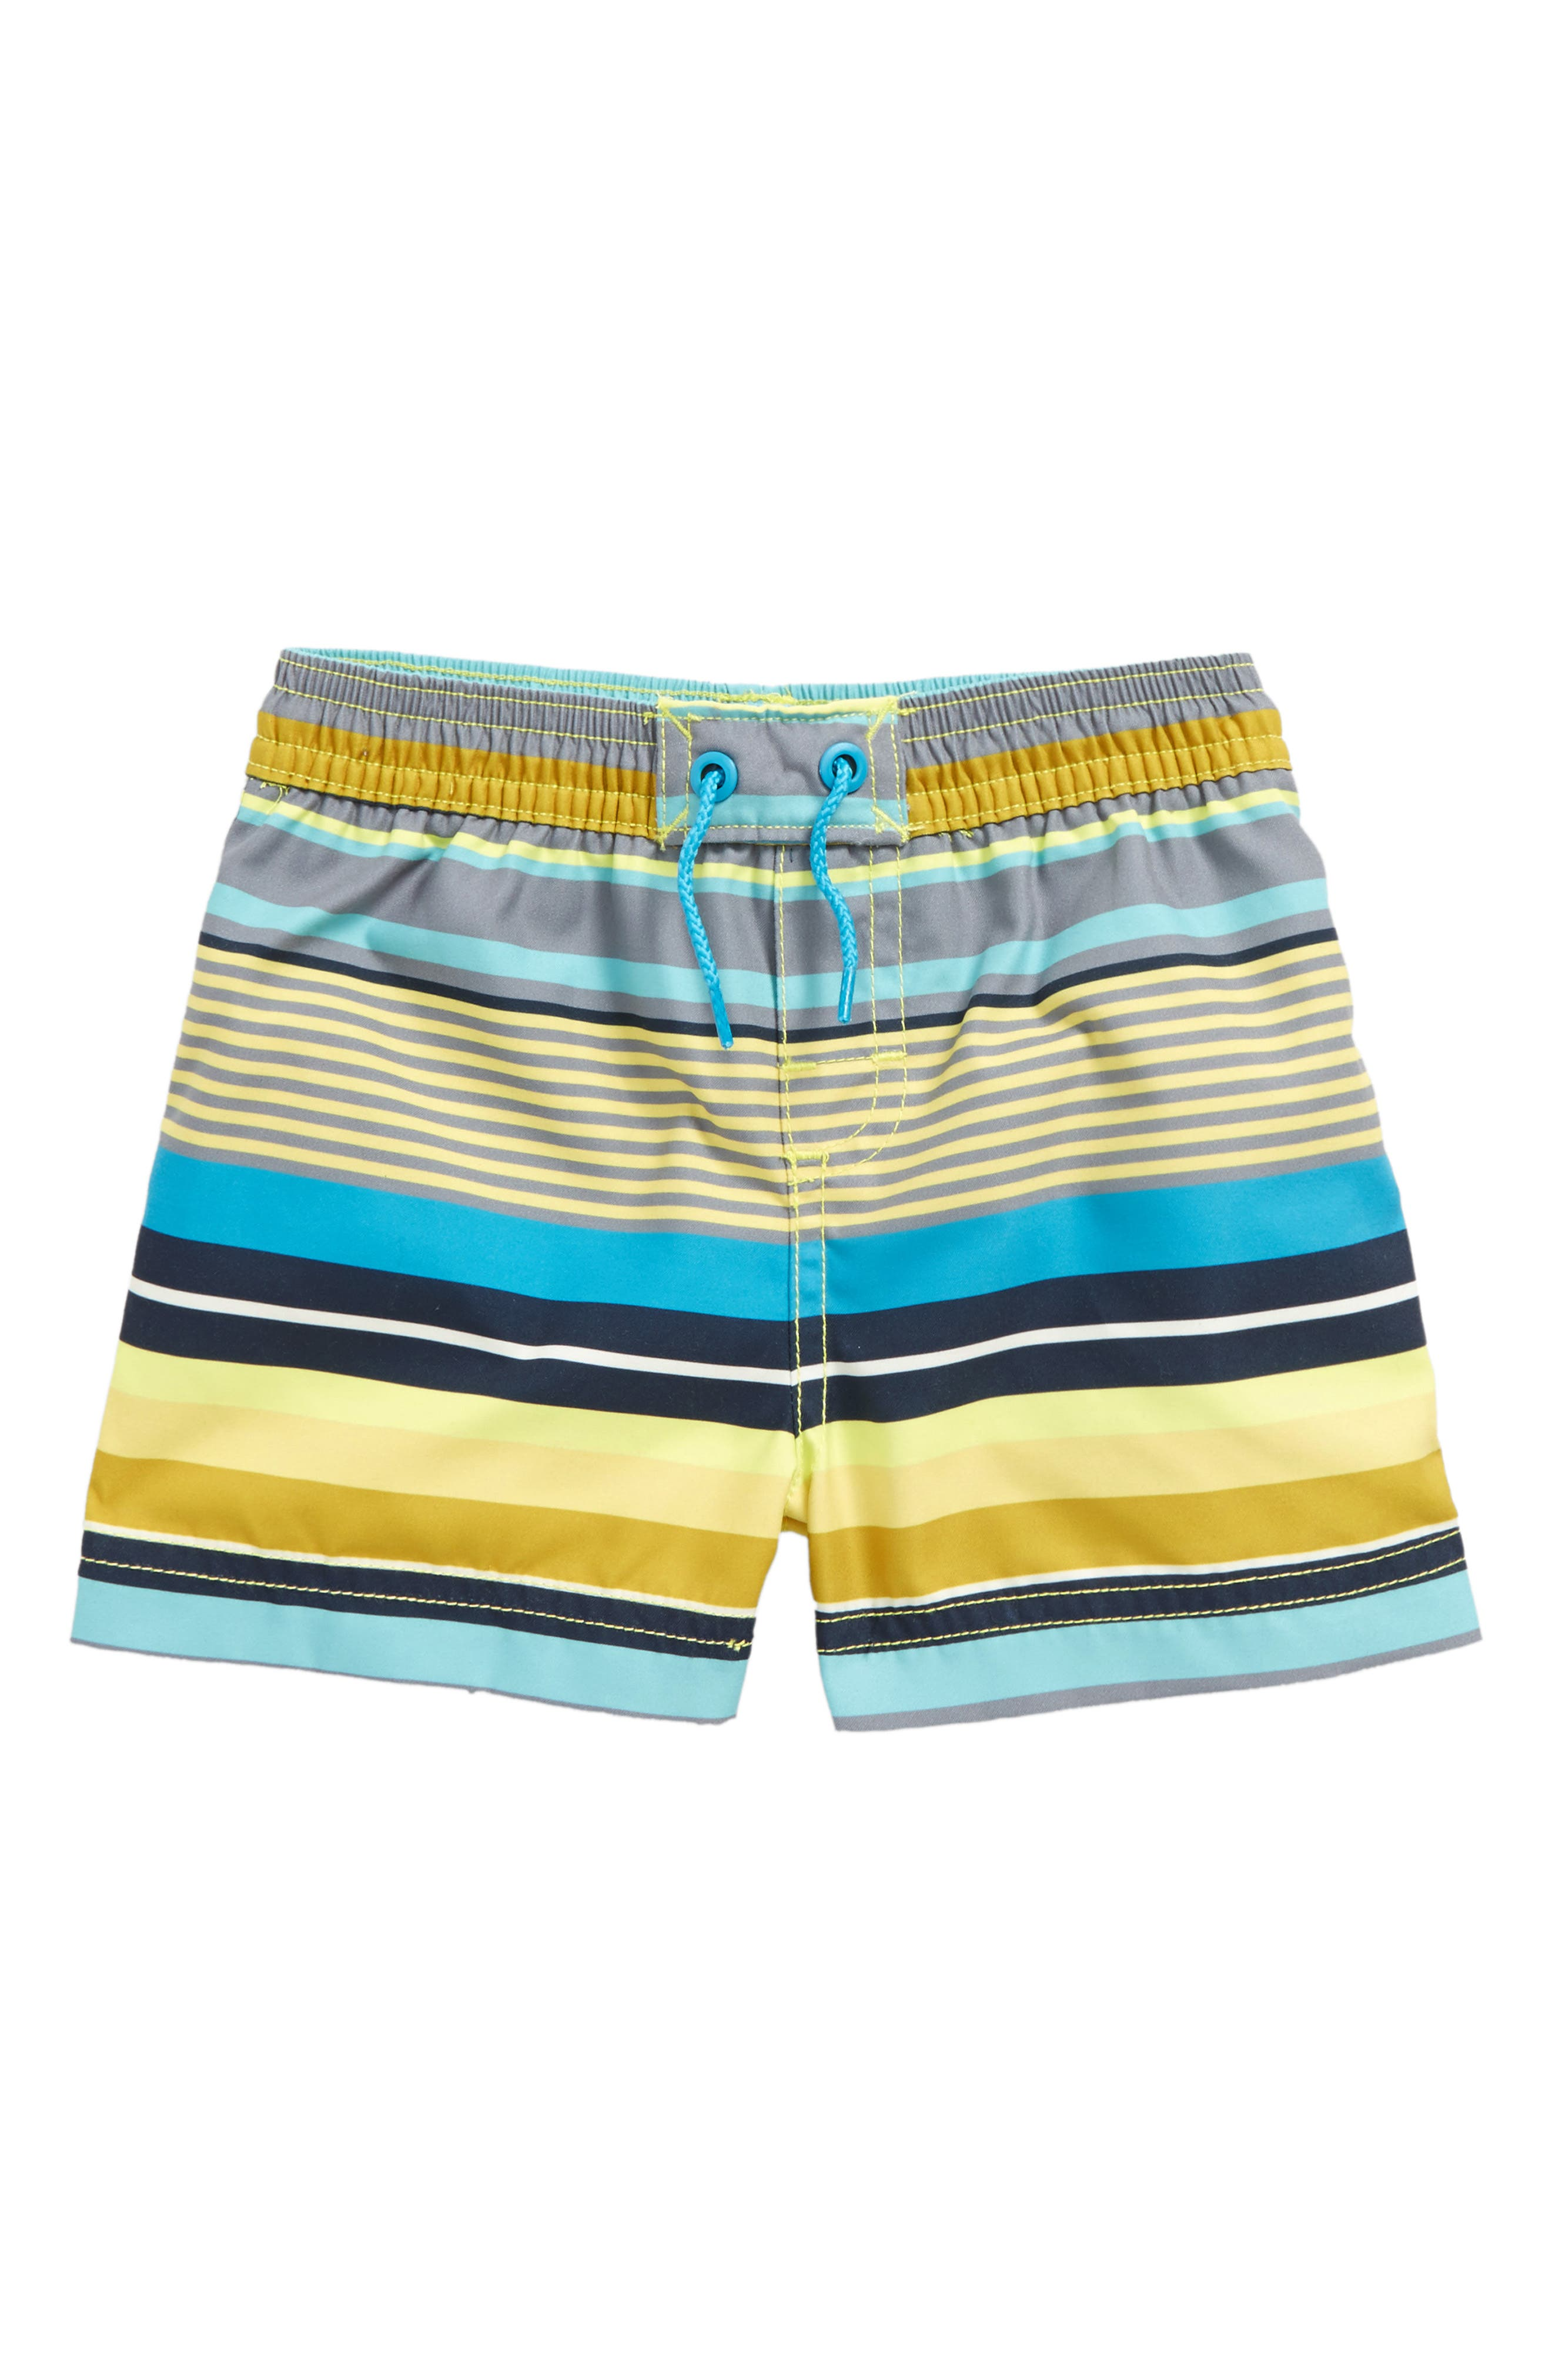 Main Image - Tea Collection Dawn Patrol Swim Trunks (Baby Boys)